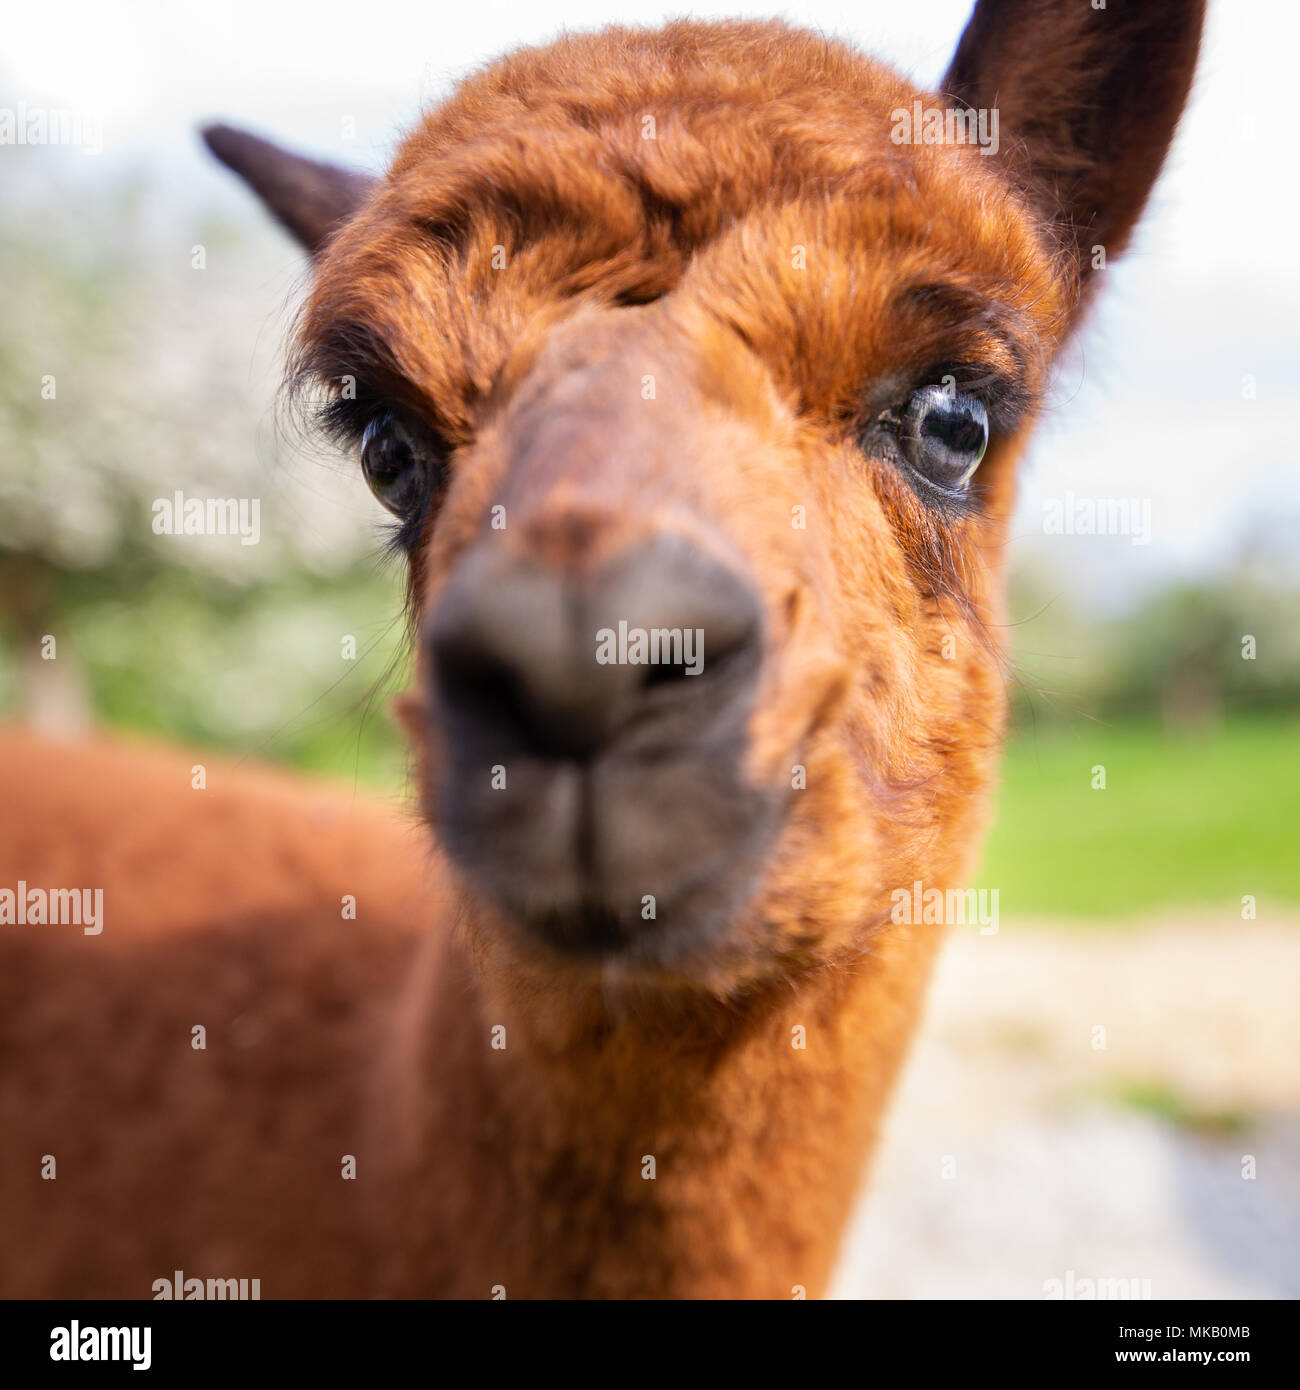 Portrait of a young Alpaca close-up, South American mammal - Stock Image